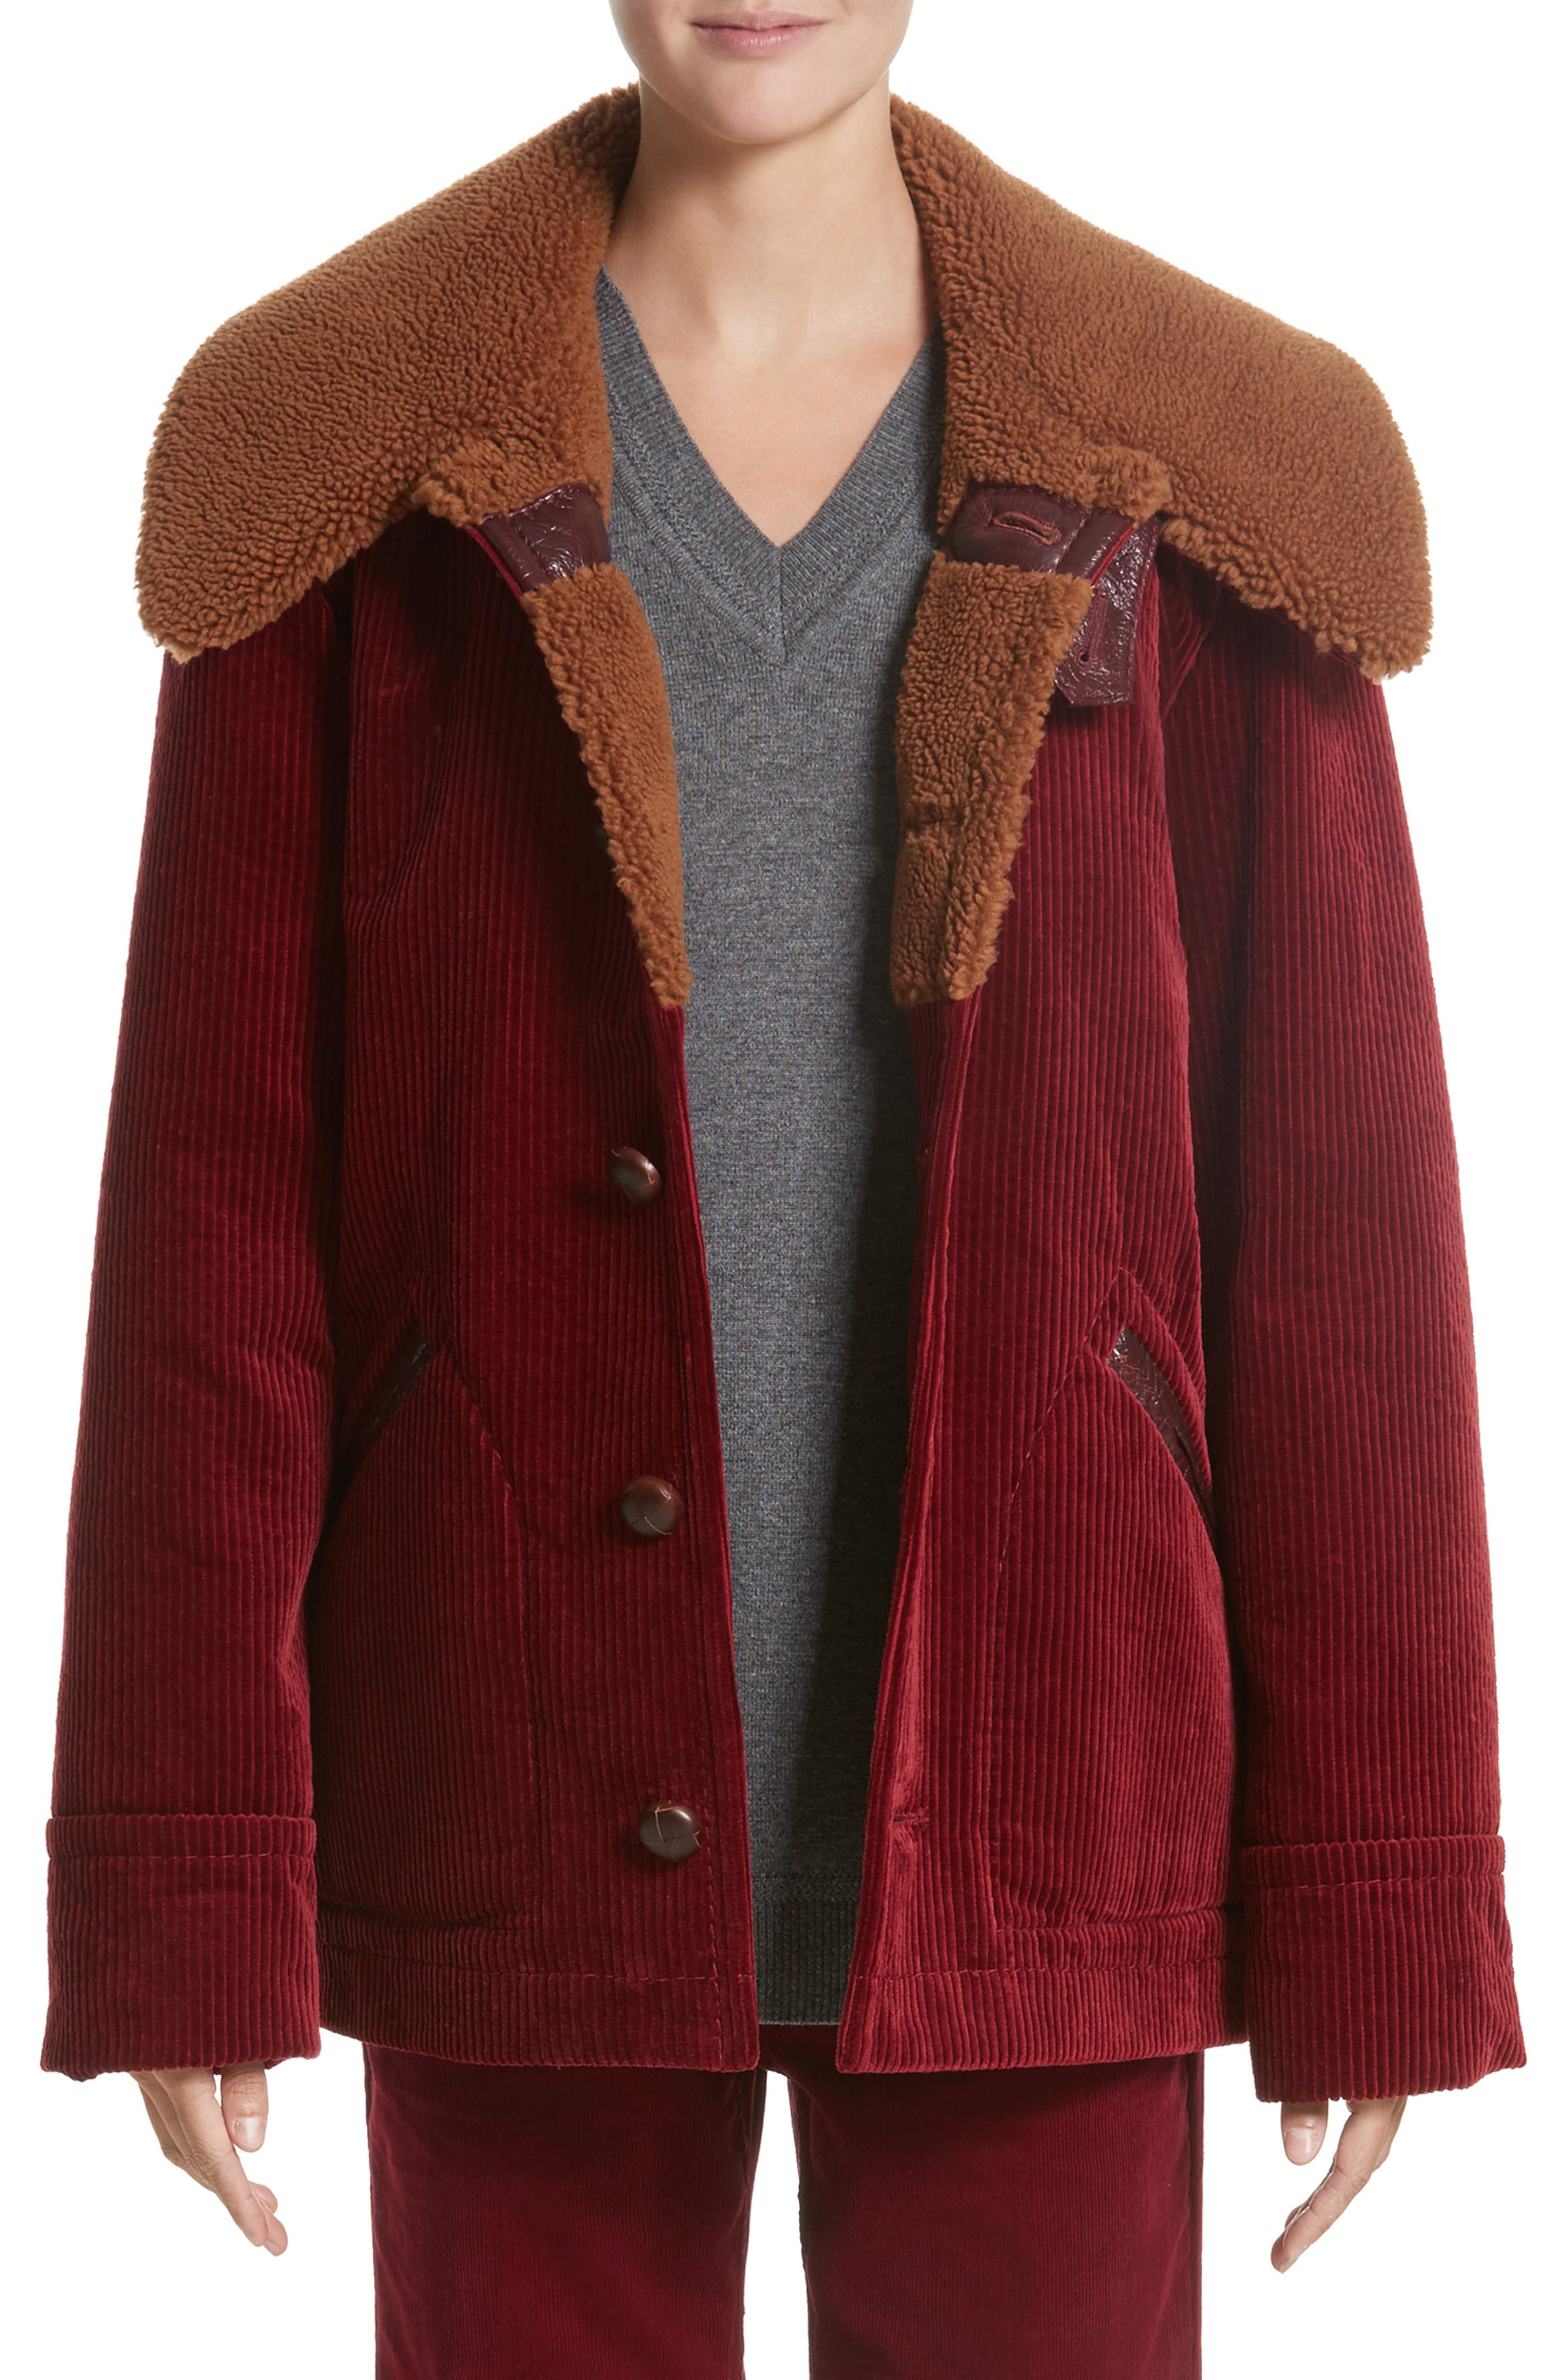 Alternate Image 1 Selected - MARC JACOBS Corduroy Coat with Faux Shearling Collar